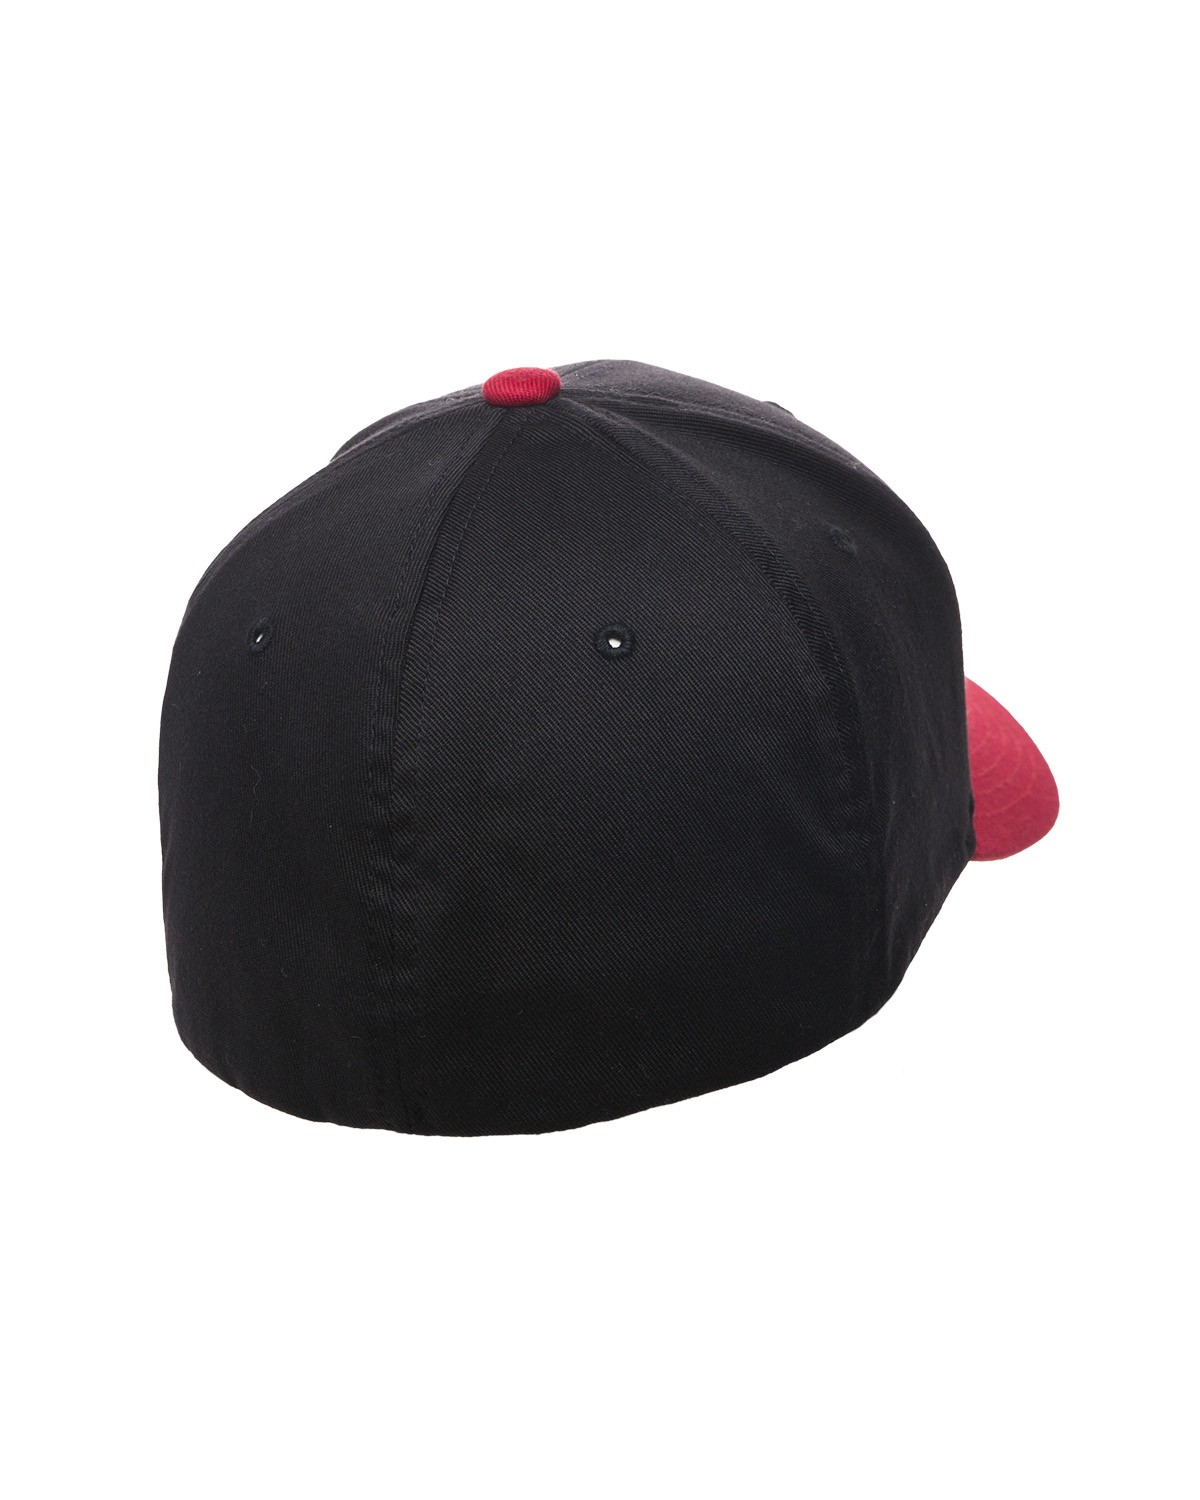 6277 Flexfit BLACK/RED